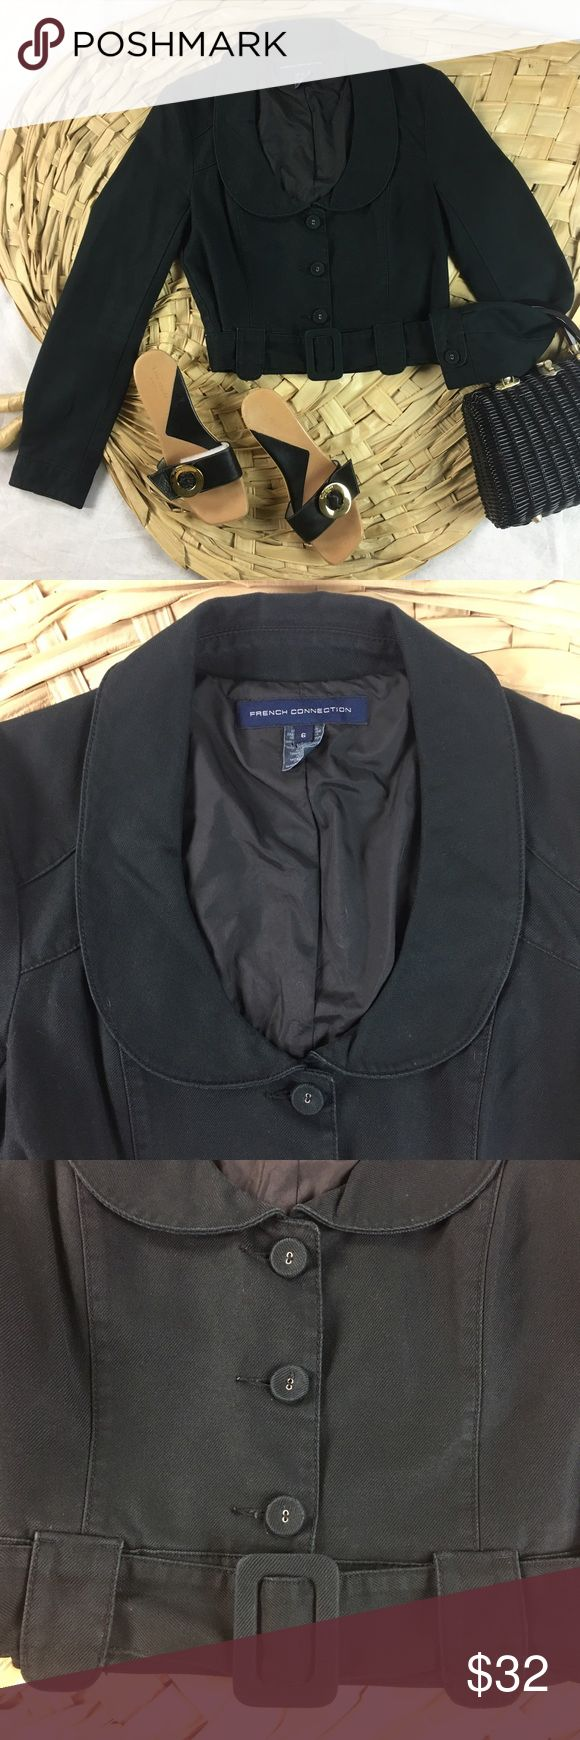 "French Connection Belted Black Denim Crop Jacket This denim crop jacket features fabric-covered buttons, buttoned sleeve cuffs & an adjustable waist belt. Shoulder to hem 42"", shoulder to cuff 35"". Exterior made of 100% cotton, lining made of 100% polyester. Excellent condition. French Connection Jackets & Coats Jean Jackets"